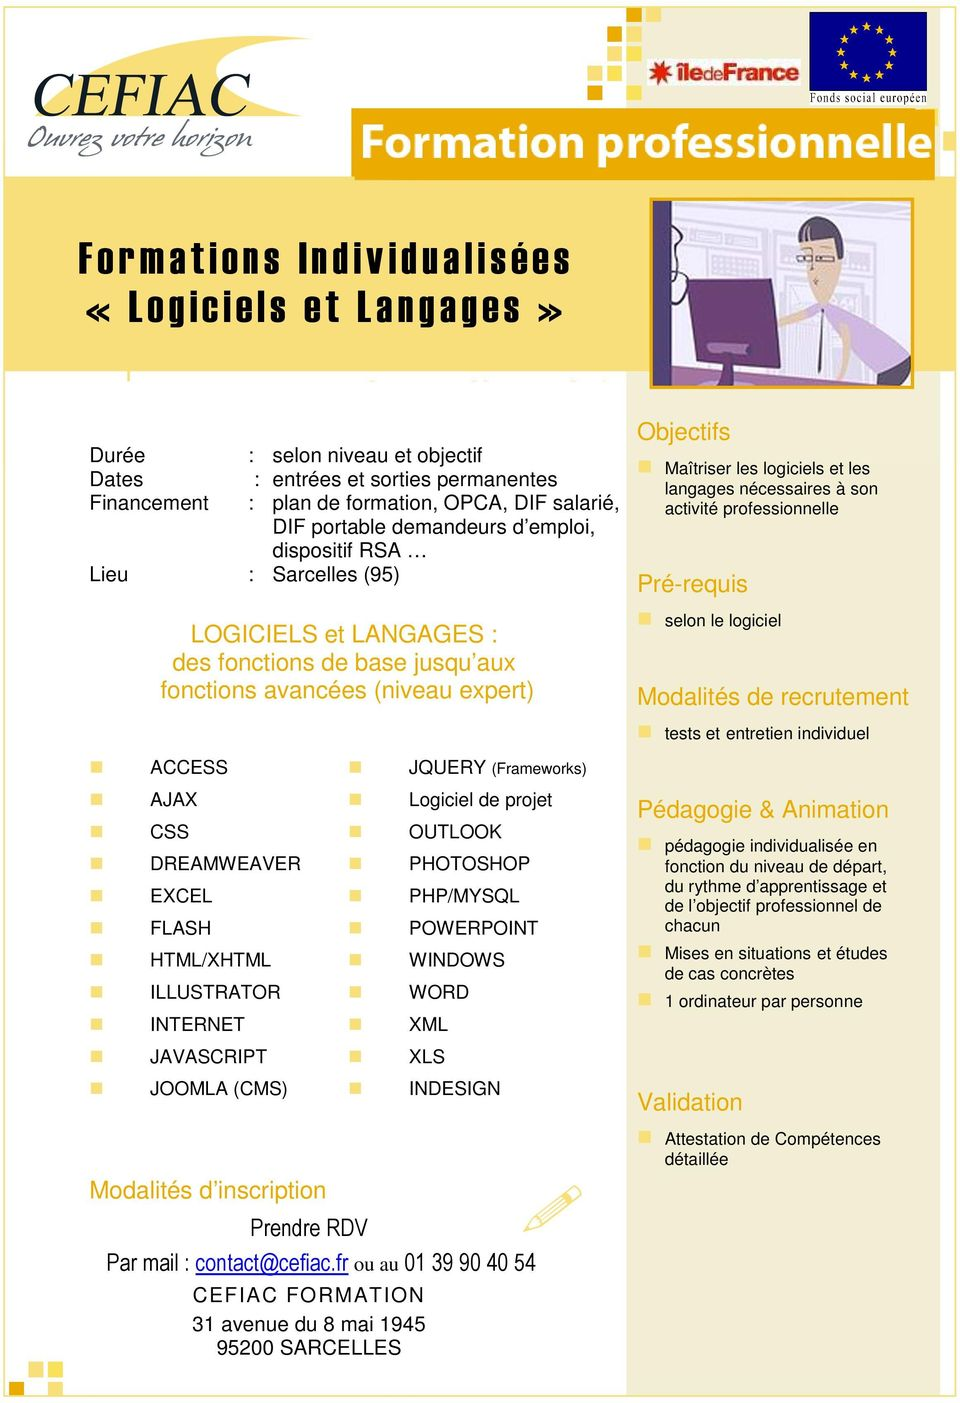 DREAMWEAVER EXCEL FLASH HTML/XHTML ILLUSTRATOR INTERNET JAVASCRIPT JOOMLA (CMS) Modalités d inscription Prendre RDV JQUERY (Frameworks) Logiciel de projet OUTLOOK PHOTOSHOP PHP/MYSQL POWERPOINT